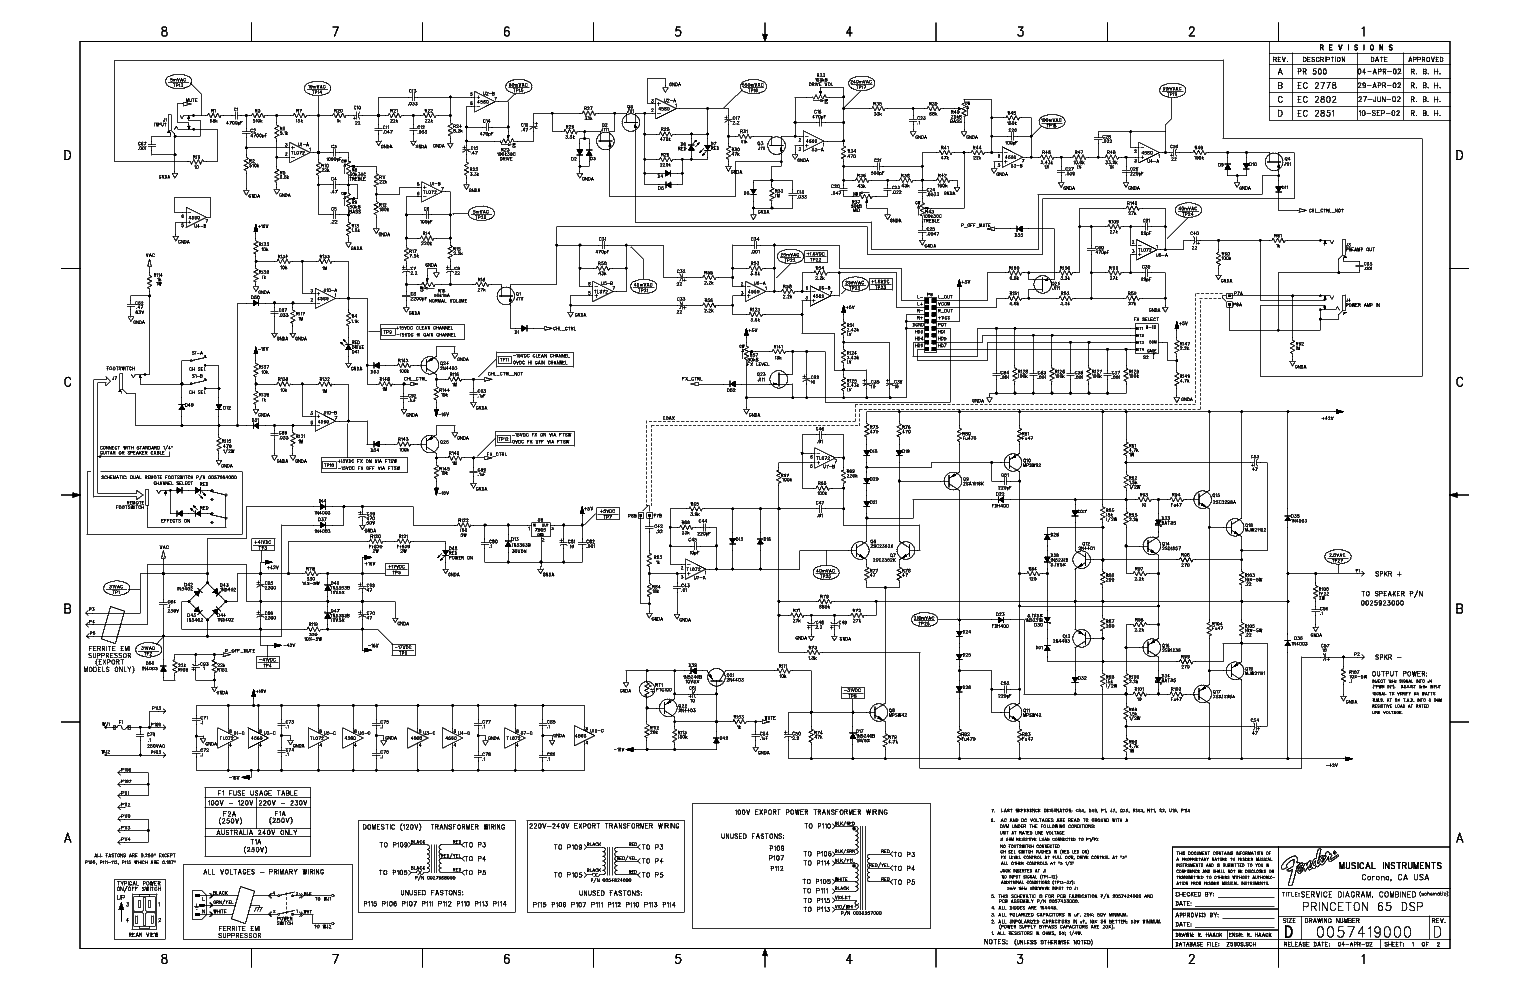 Fender Princeton Wiring Diagram Schematic Diagrams Support 65 Dsp Guitar Amplifier Sch Service Manual Download